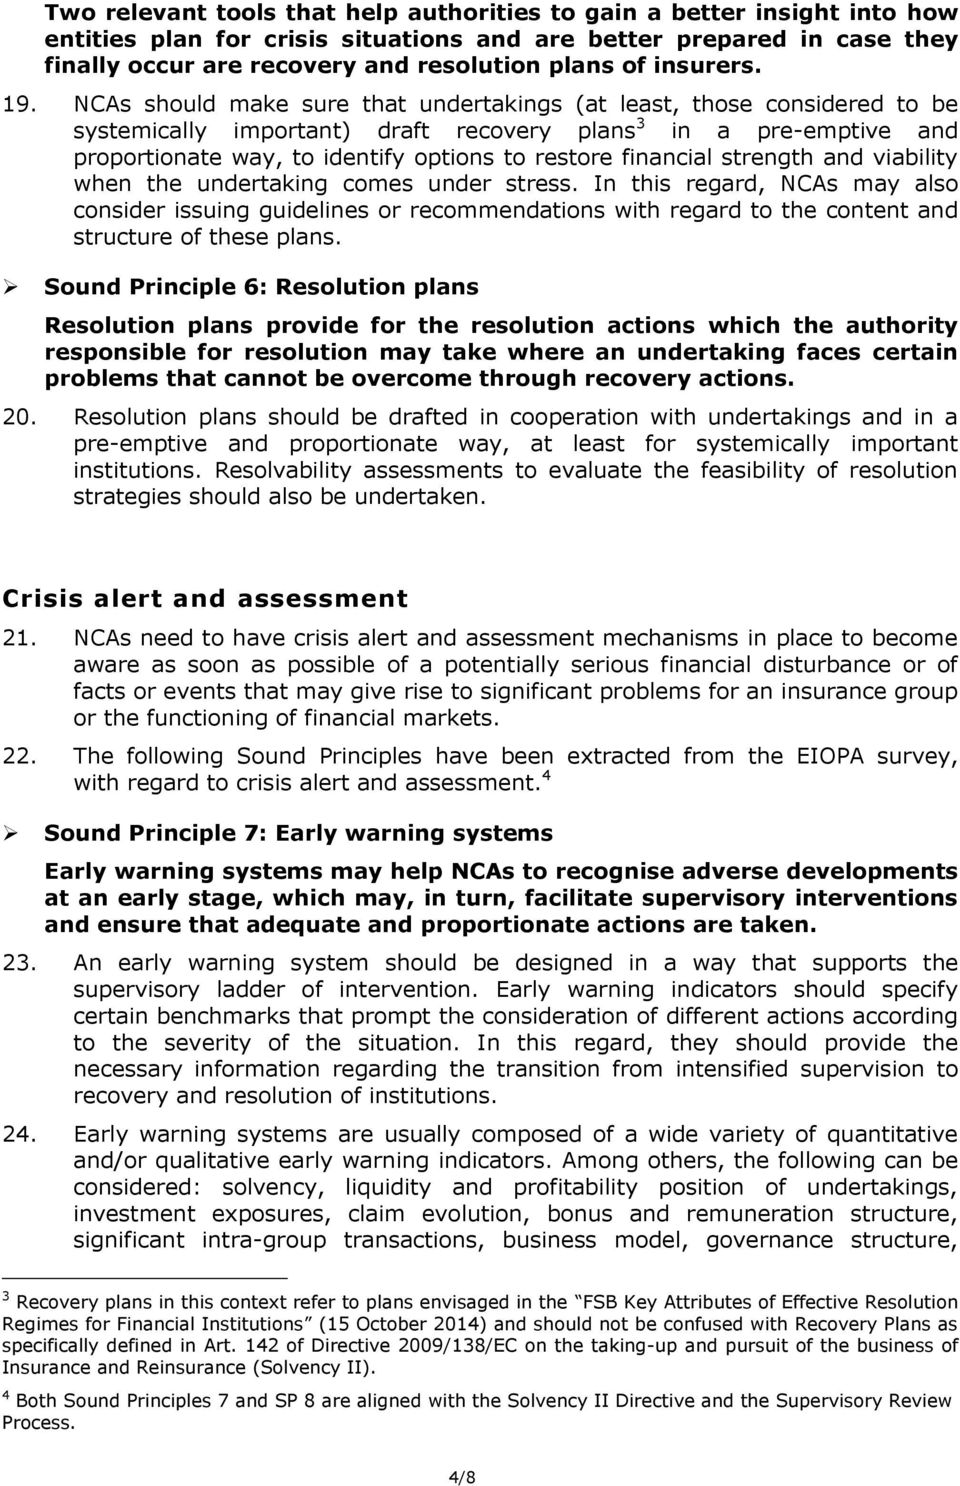 NCAs should make sure that undertakings (at least, those considered to be systemically important) draft recovery plans 3 in a pre-emptive and proportionate way, to identify options to restore